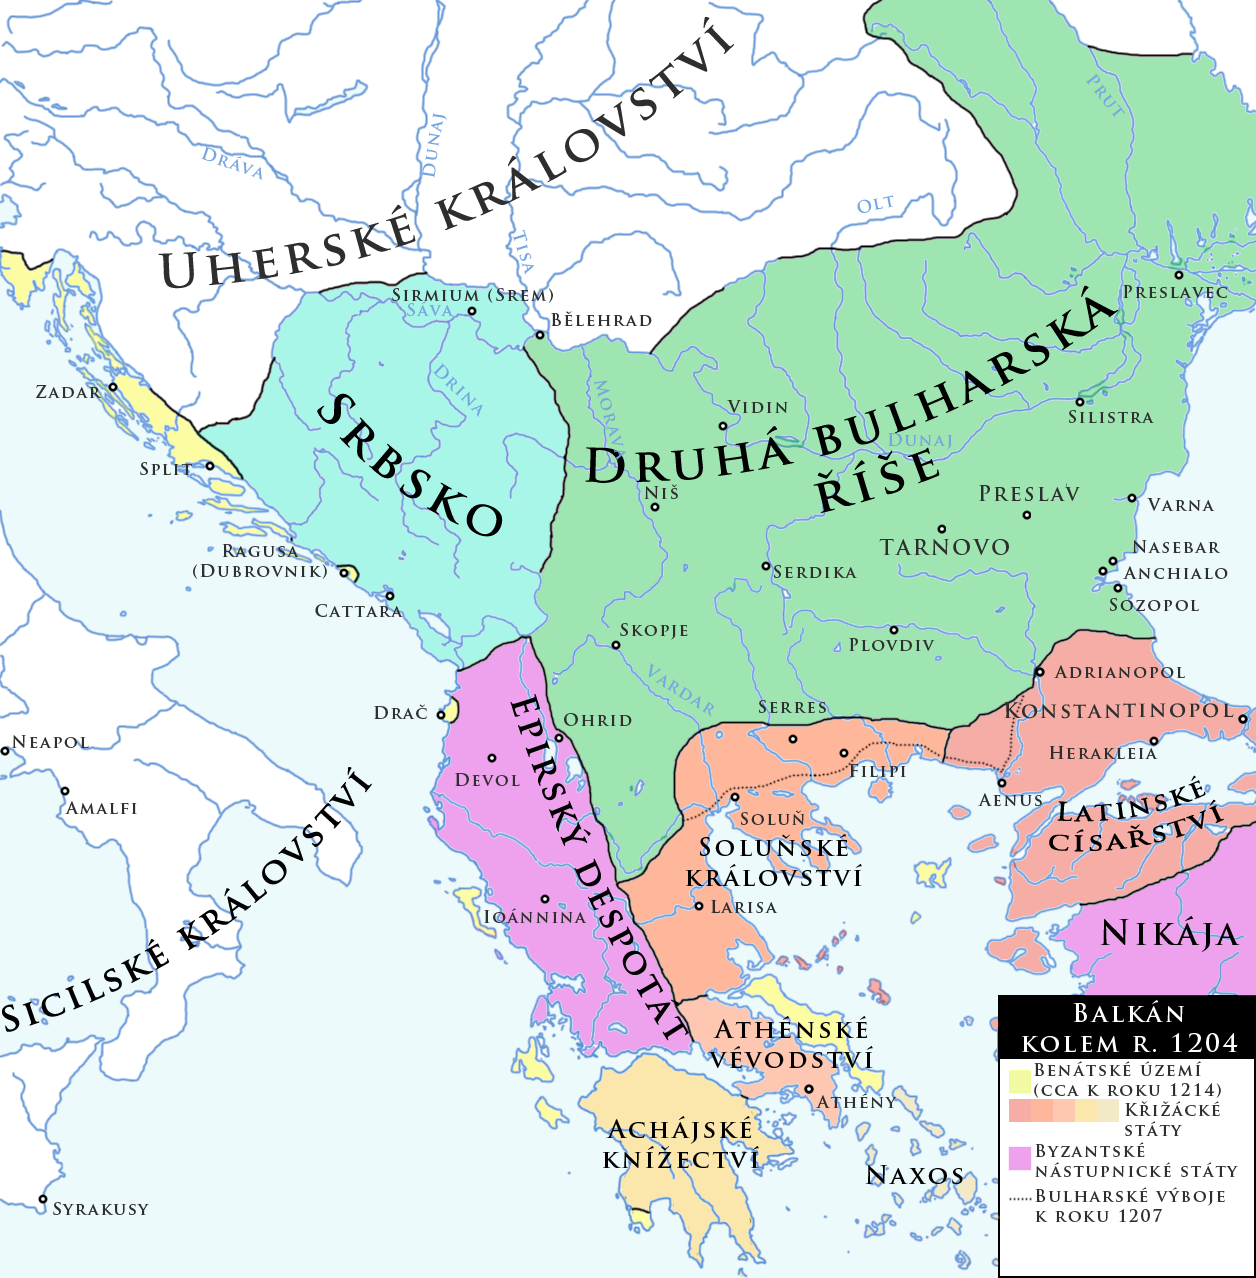 File:Balkans-1204-cs.png